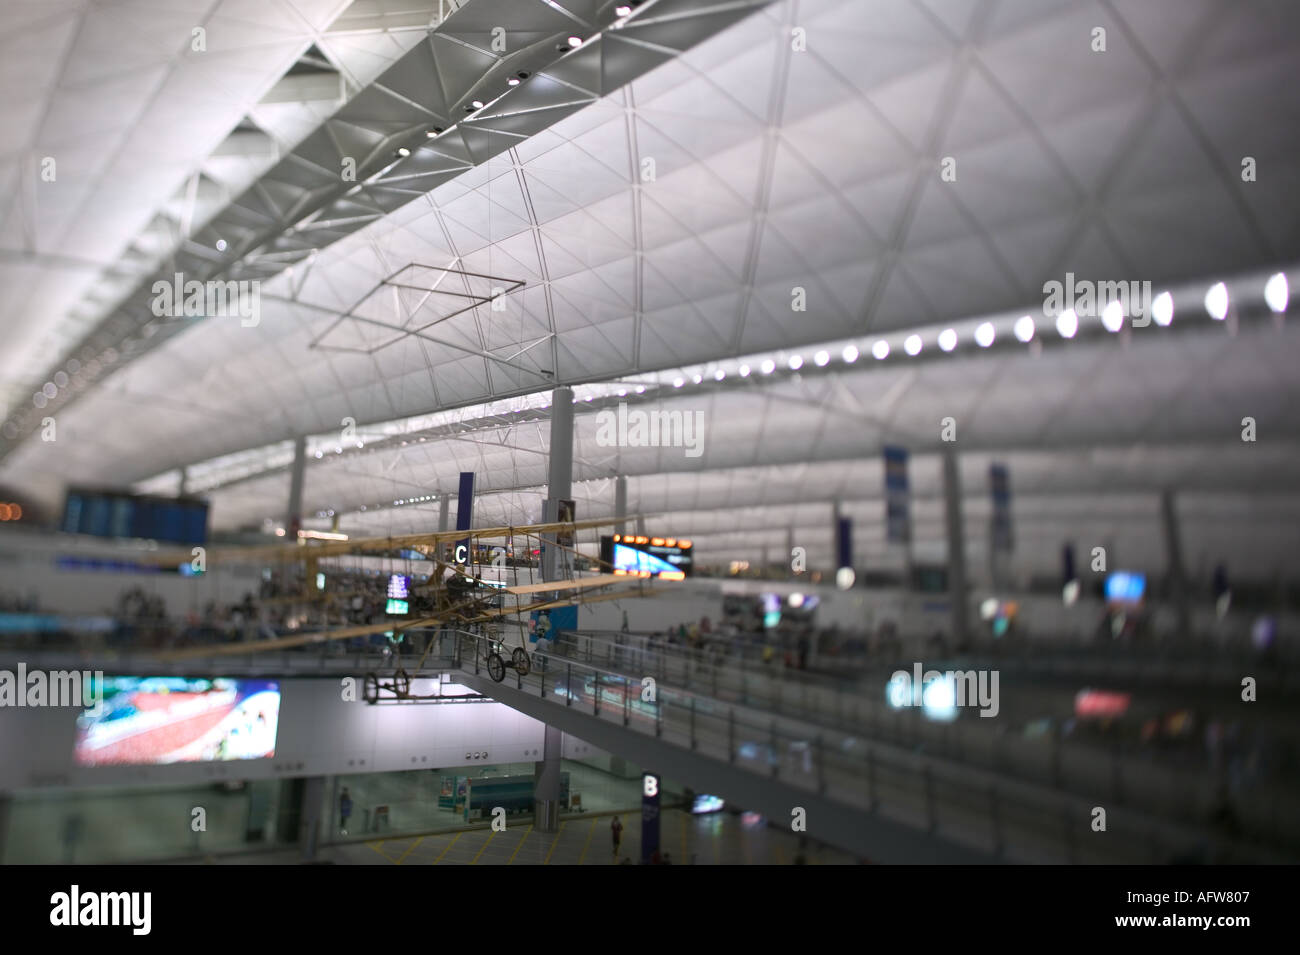 departure area at Hong Kongs Chek Lap Kok airport - Stock Image